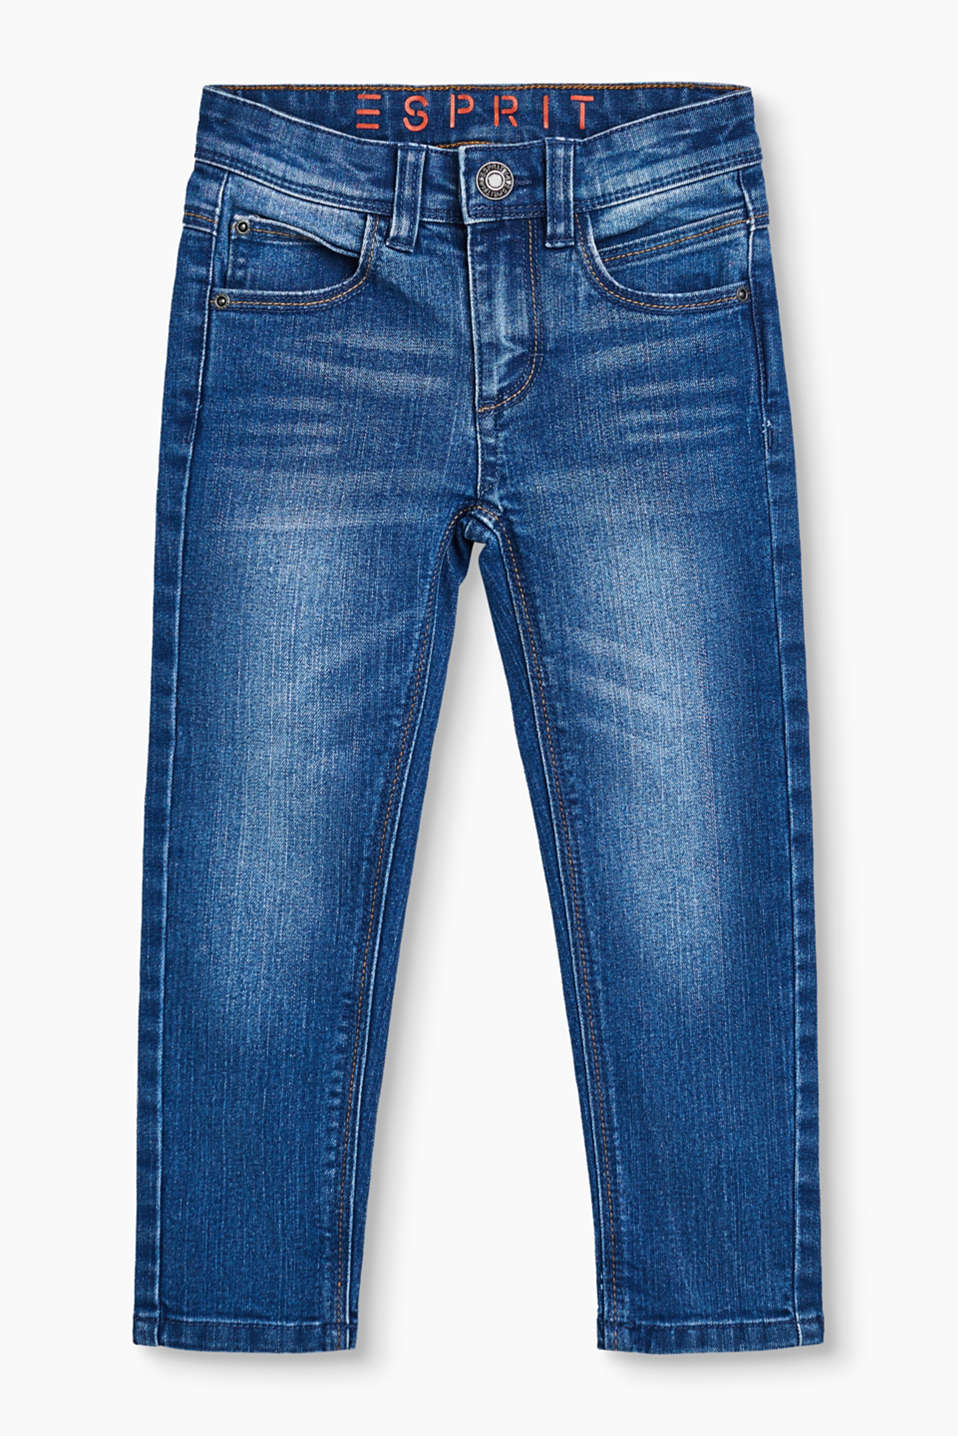 Stretch jeans in a five-pocket style with an adjustable waistband